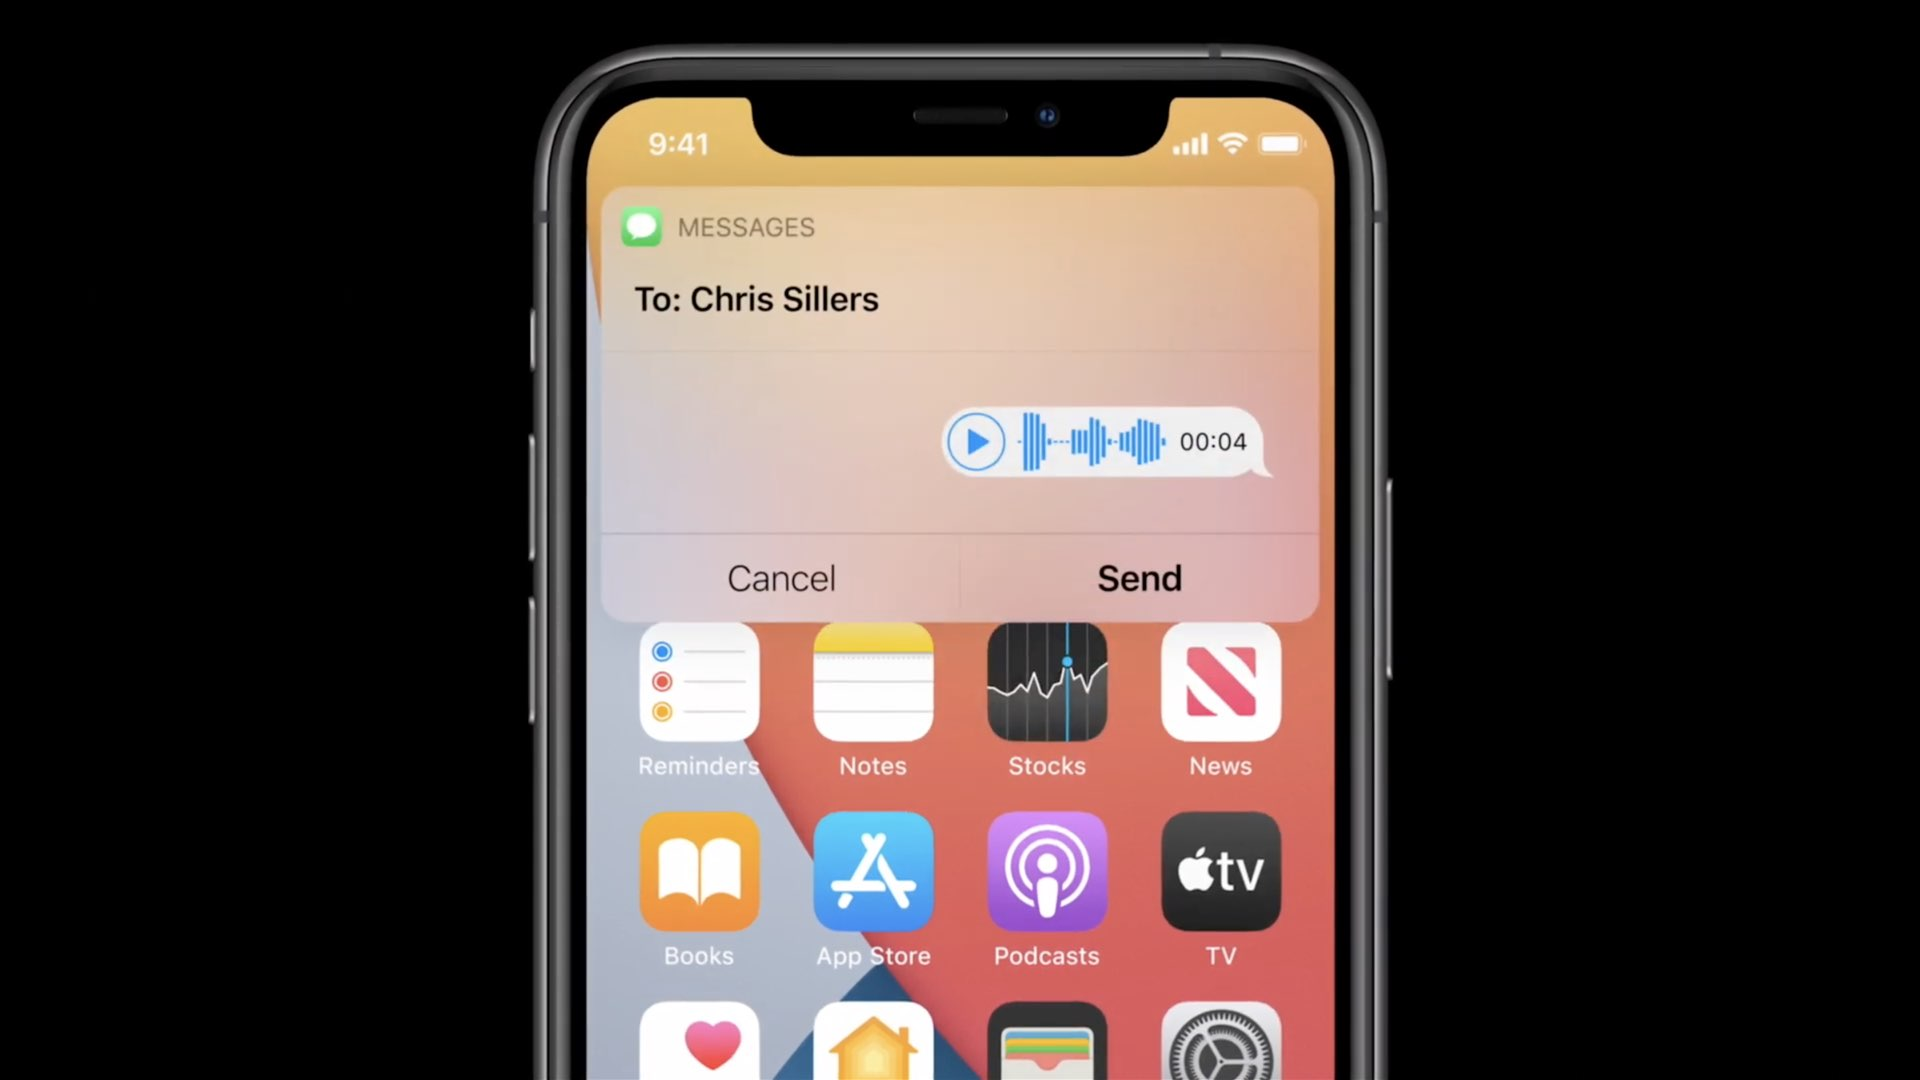 iOS 14 Messages - sending audio messages with Siri on iPhone